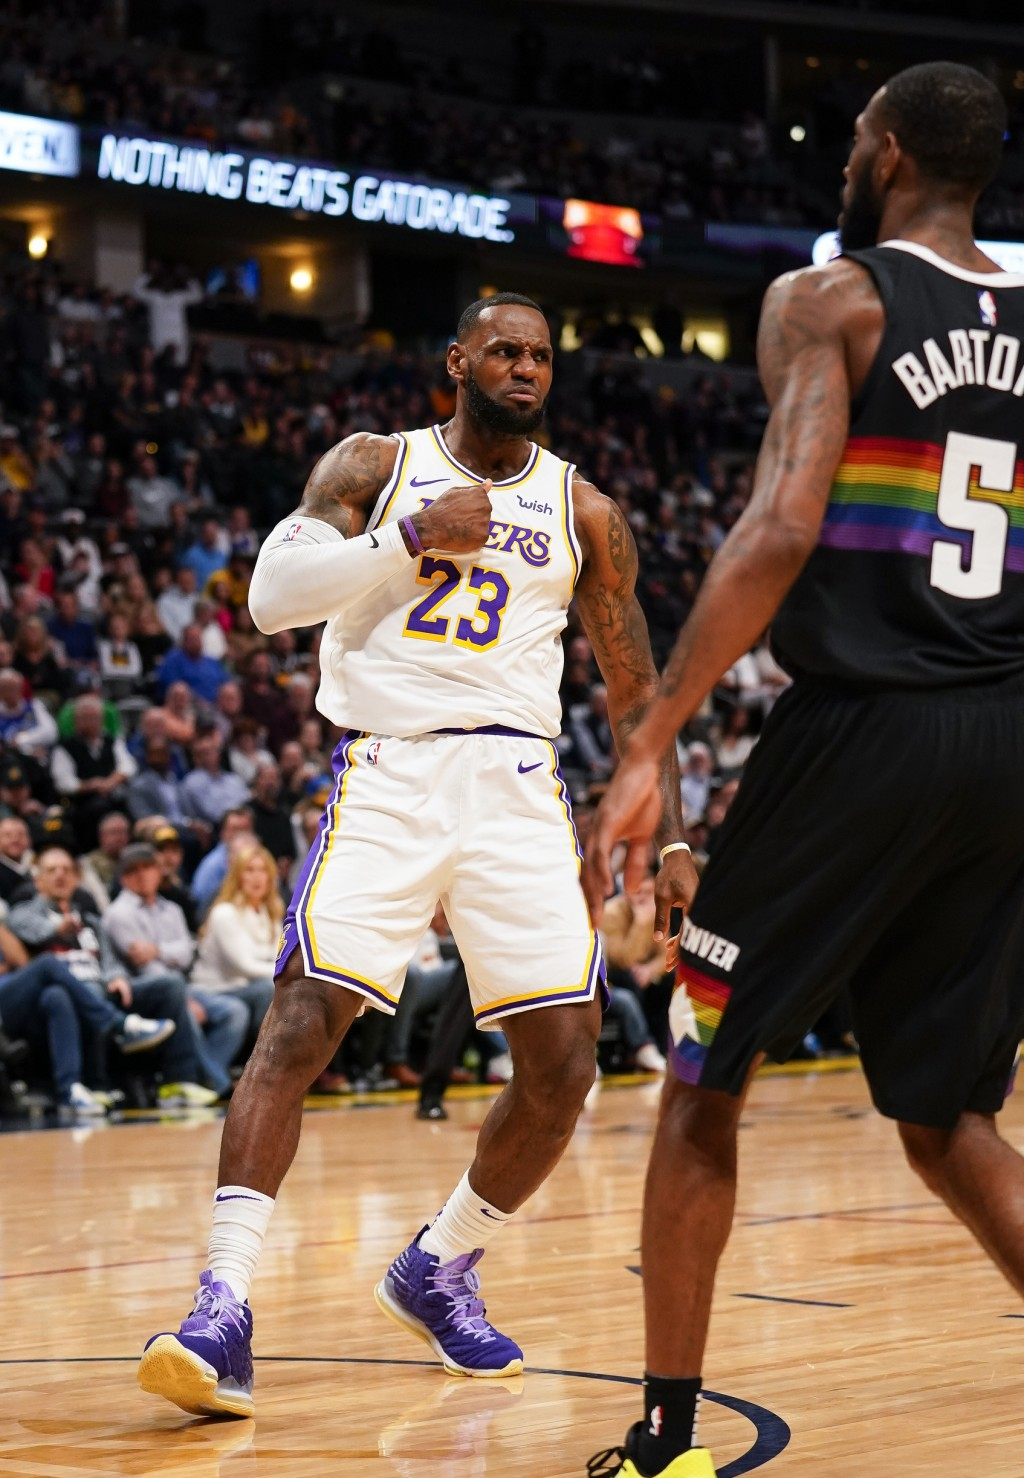 Los Angeles Lakers forward LeBron James reacts to a dunk against the Denver Nuggets during the first quarter an NBA basketball game Tuesday, Dec. 3, 2...